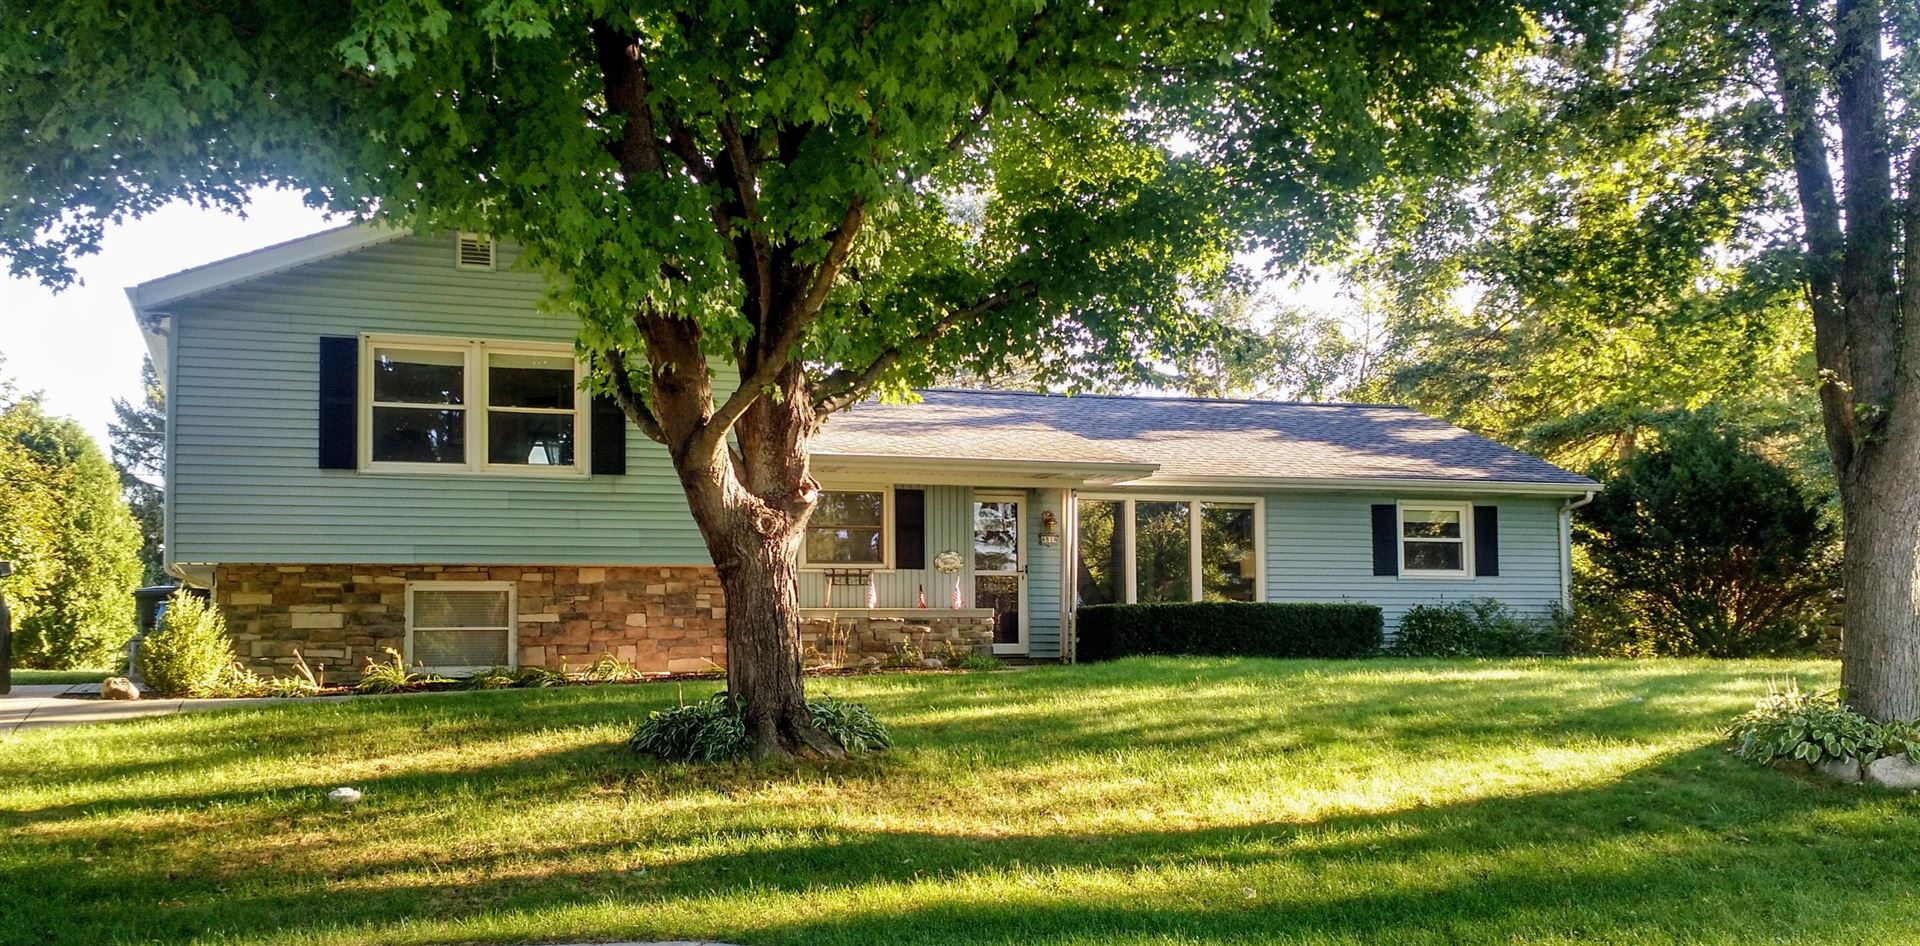 4814 S Brookdale Dr, Greenfield, WI 53228 - #: 1709200